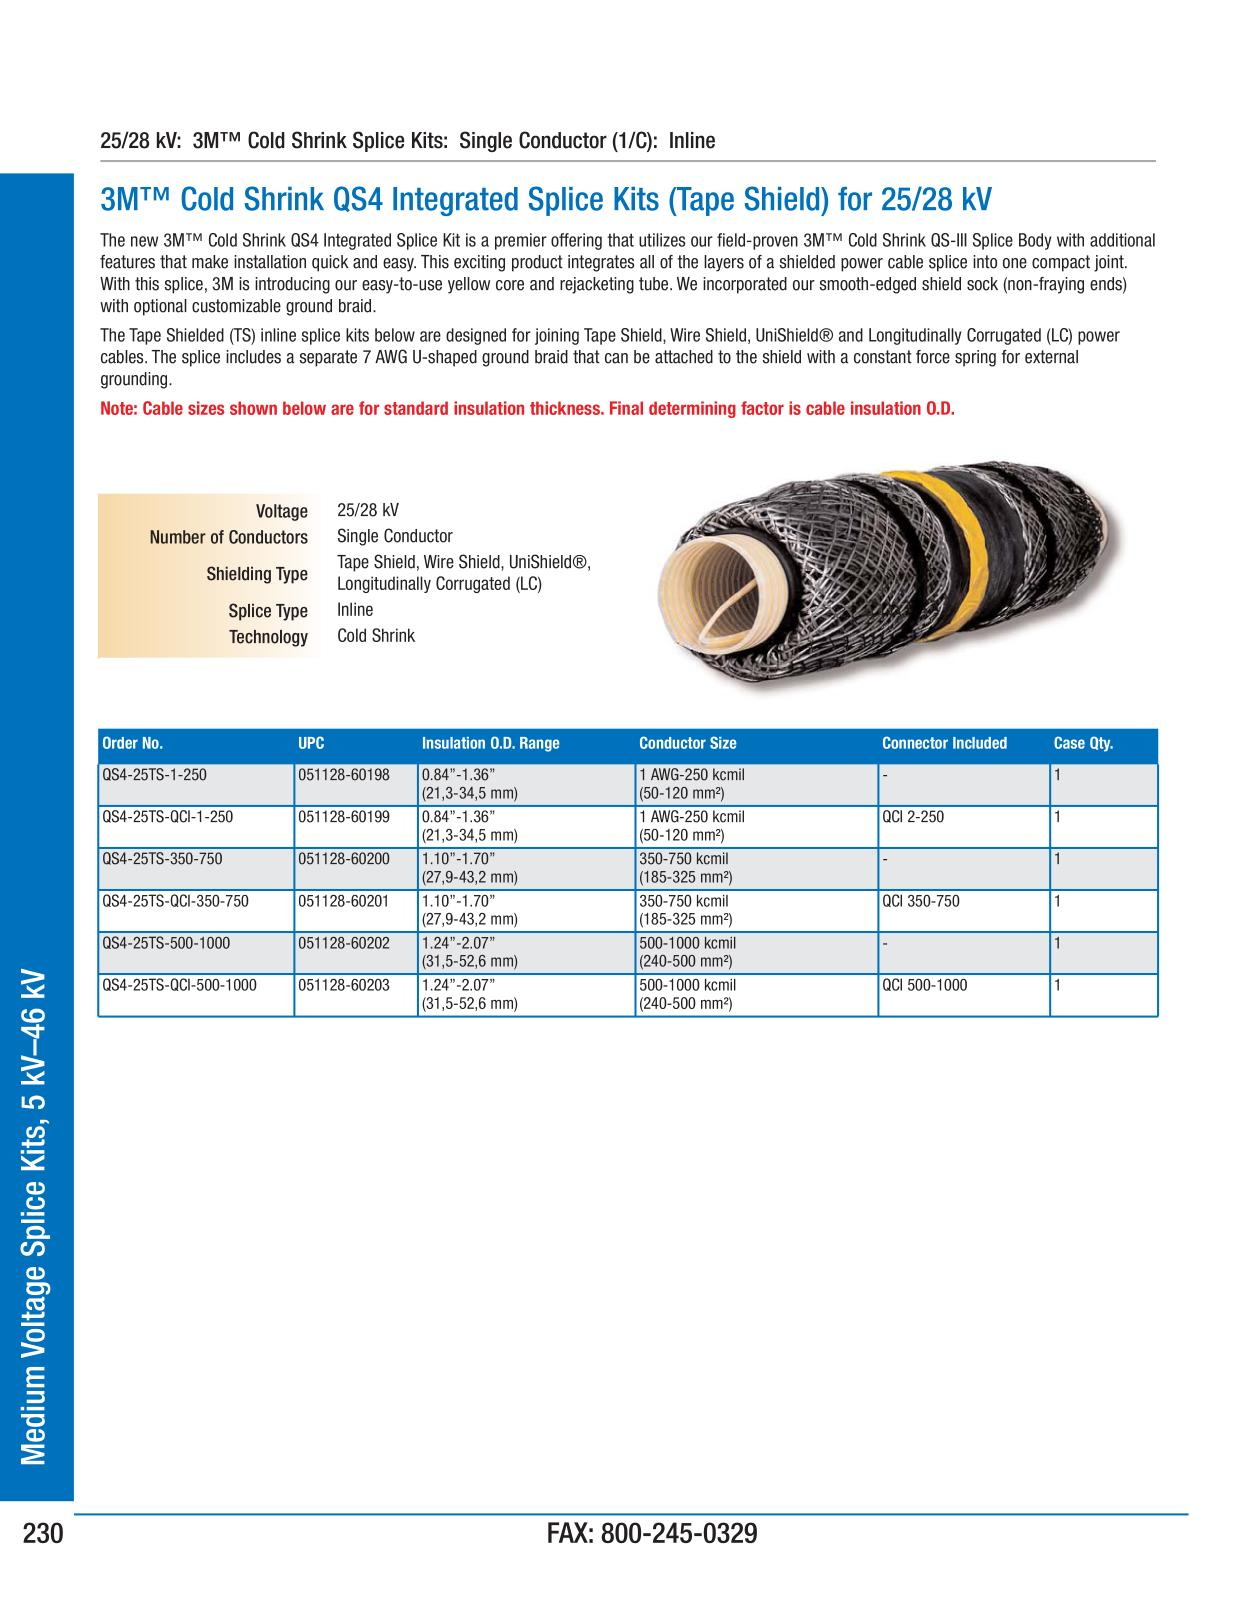 Medium voltage splice kits 5 kv 46 kv 3m electrical products medium voltage splice kits 5 kv 46 kv 3m electrical products page 231 greentooth Images